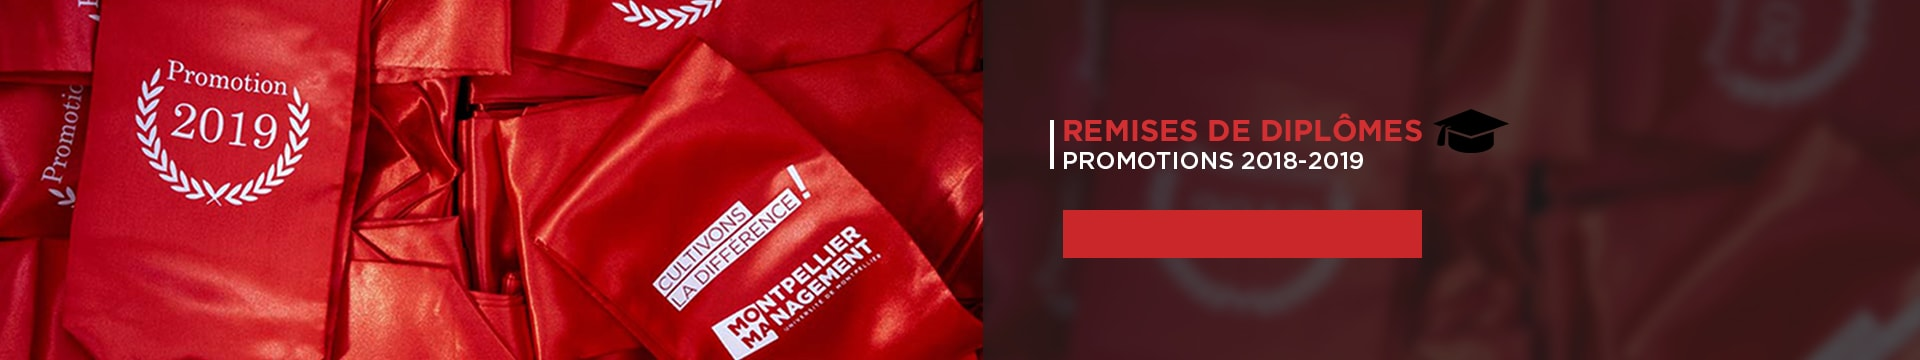 Remises de diplômes promotions 2018-2019 - Montpellier Management